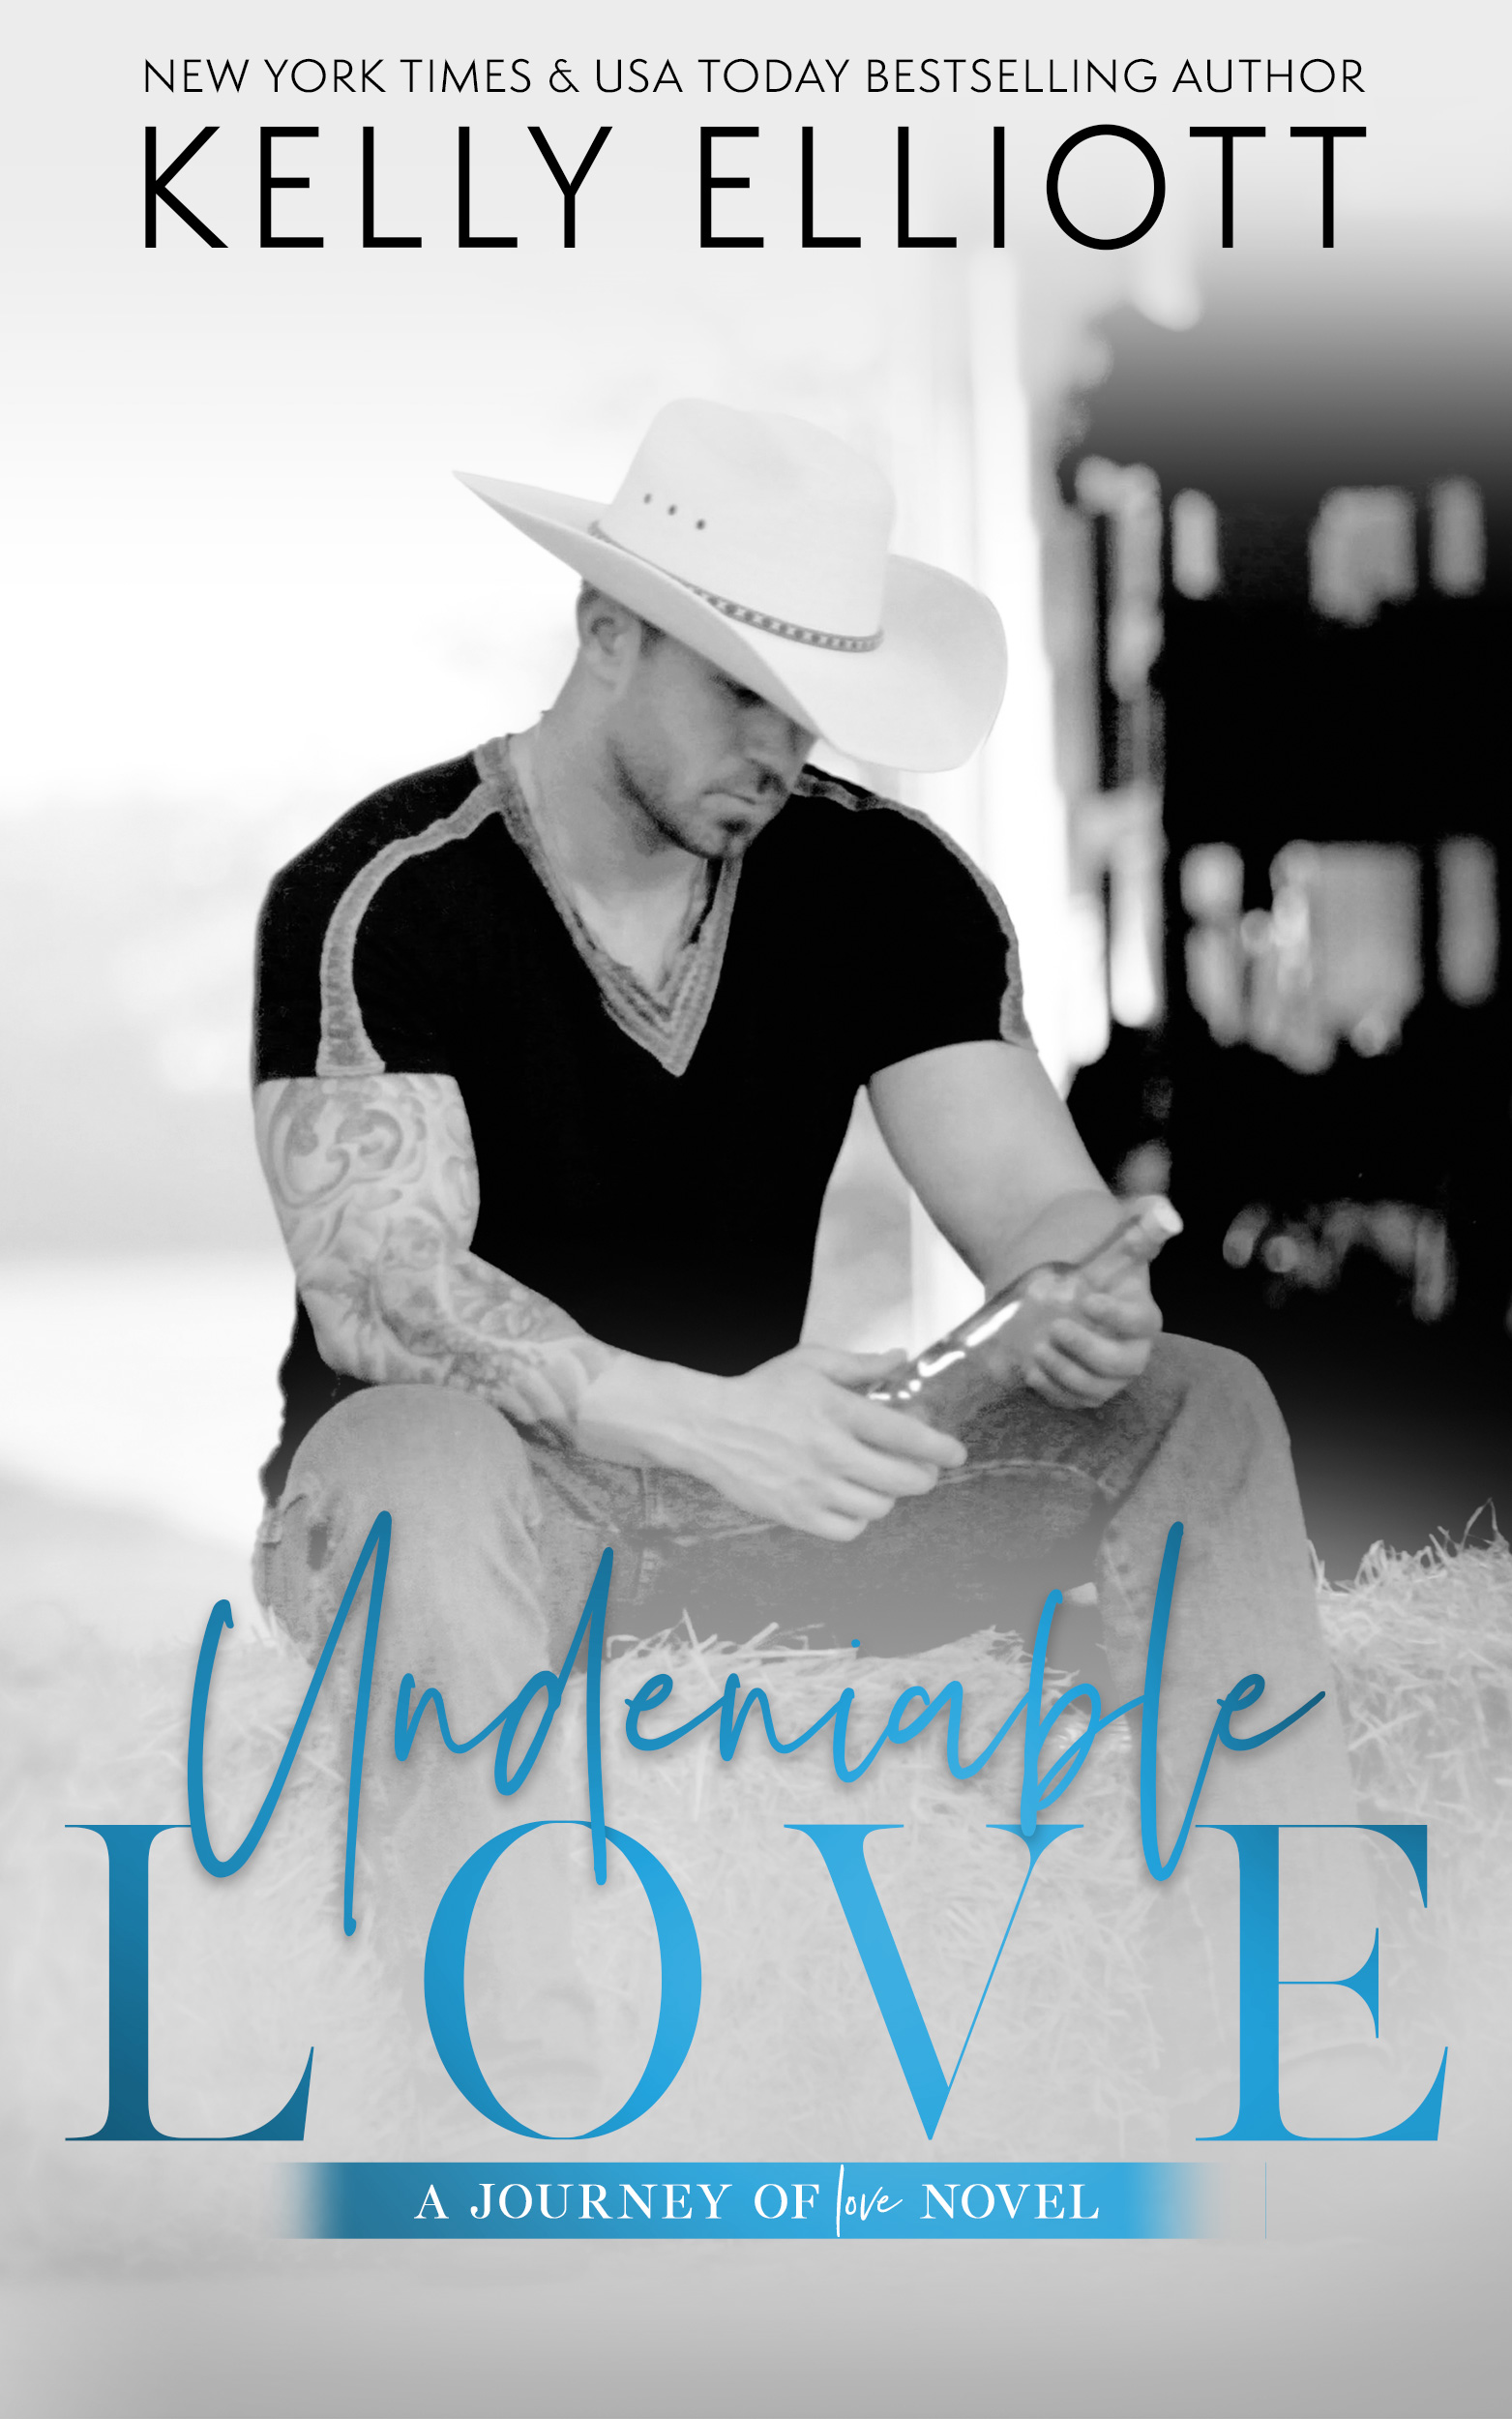 UndeniableLove-Amazon